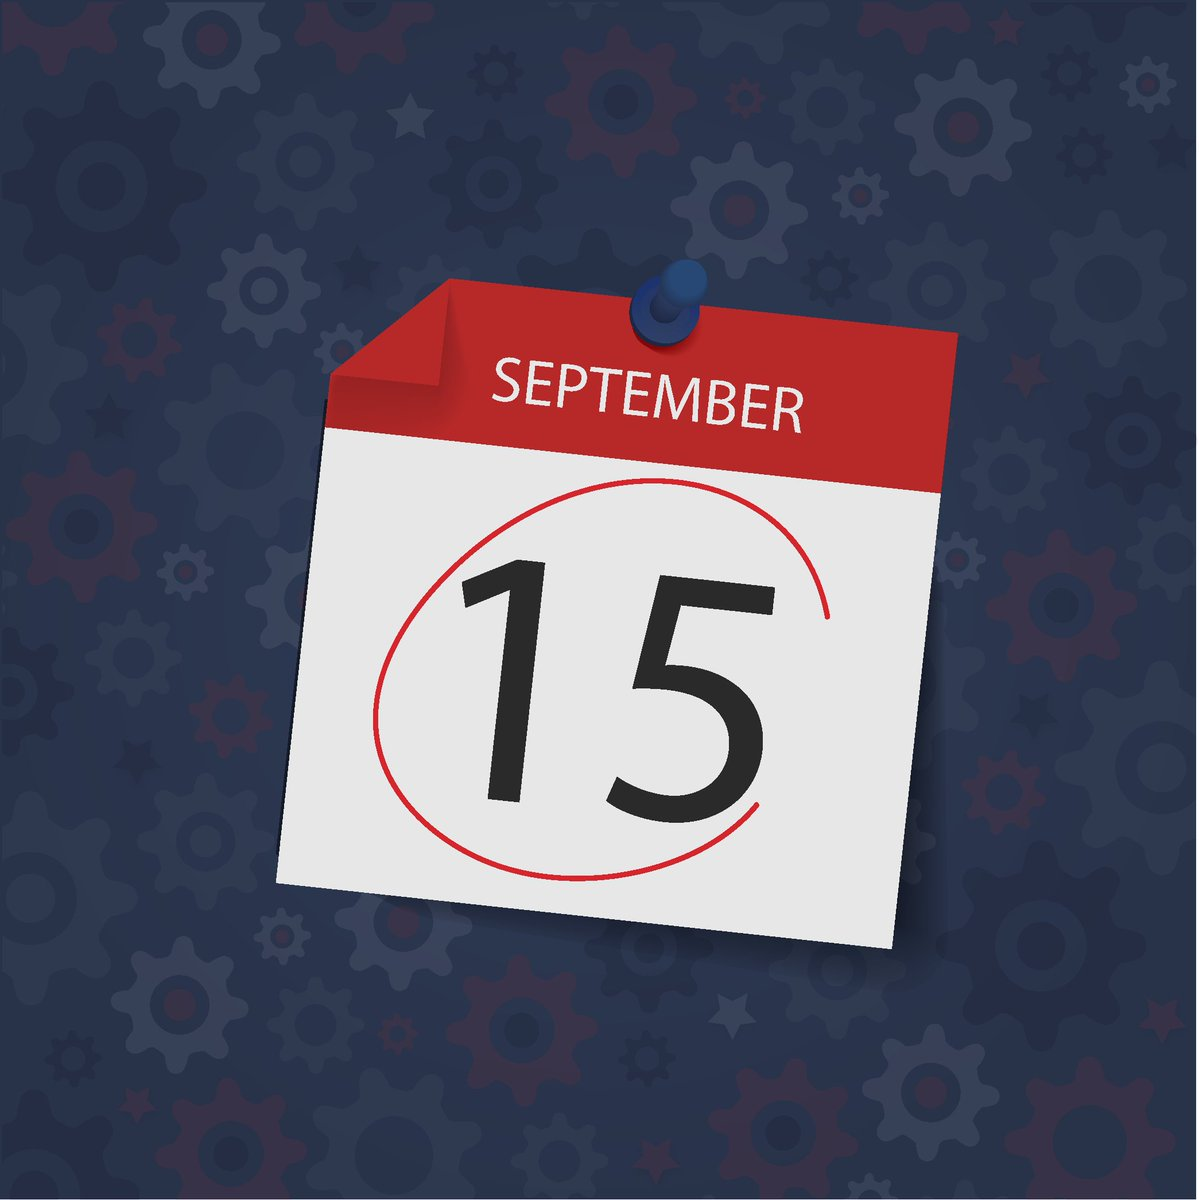 The deadline for Harrison County students to register for the West Virginia Virtual School is today, Sept. 15th.  As a reminder, after today, HC students that have enrolled in WVVS courses are committed to staying in their WVVS courses for the entire first semester.